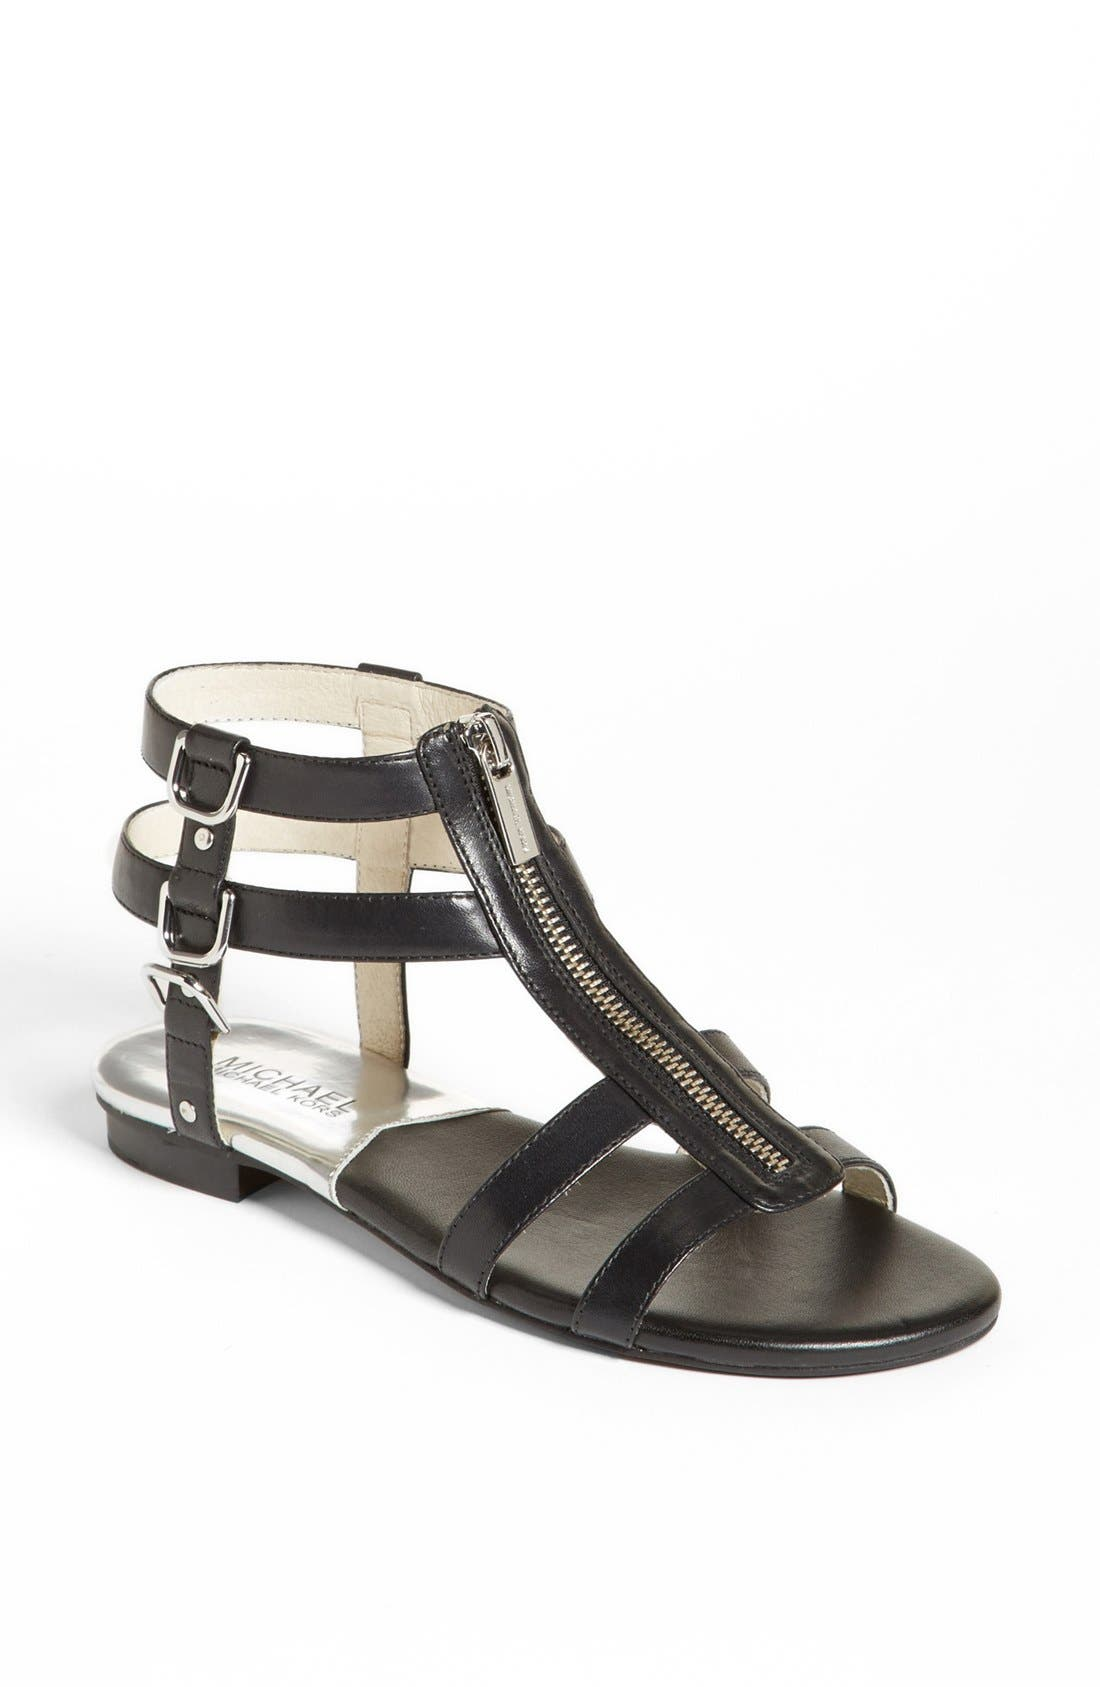 Alternate Image 1 Selected - MICHAEL Michael Kors 'Kennedy' Flat Leather Gladiator Sandal